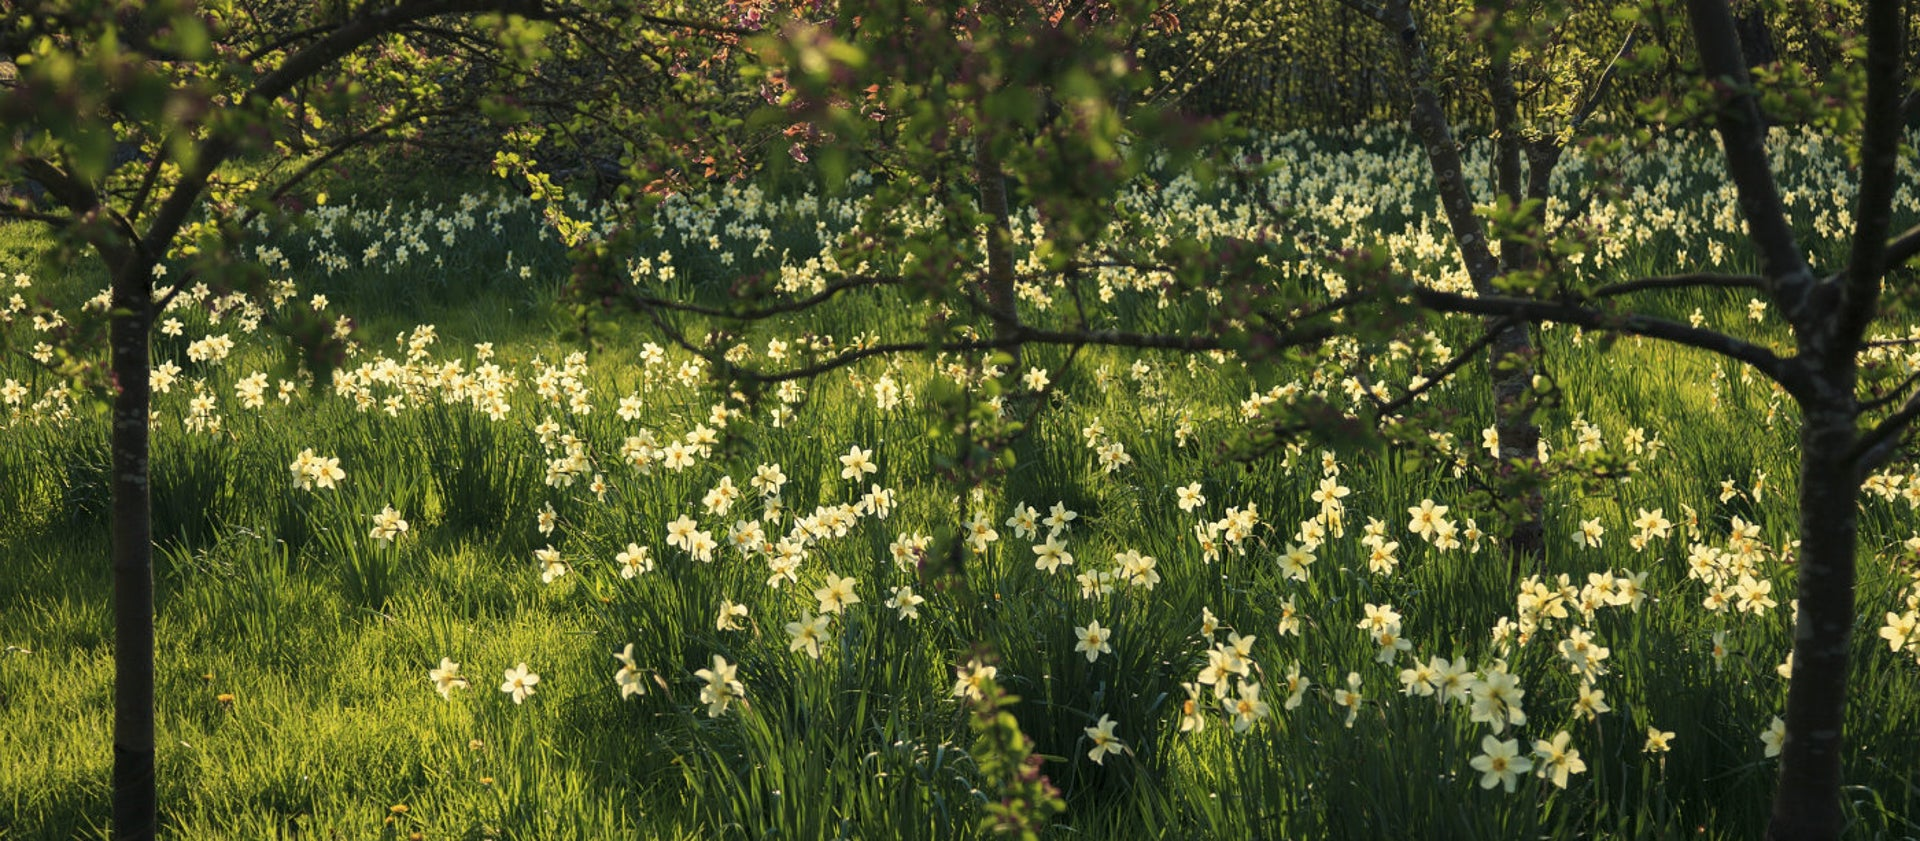 How to create an amazing daffodil display | National Trust